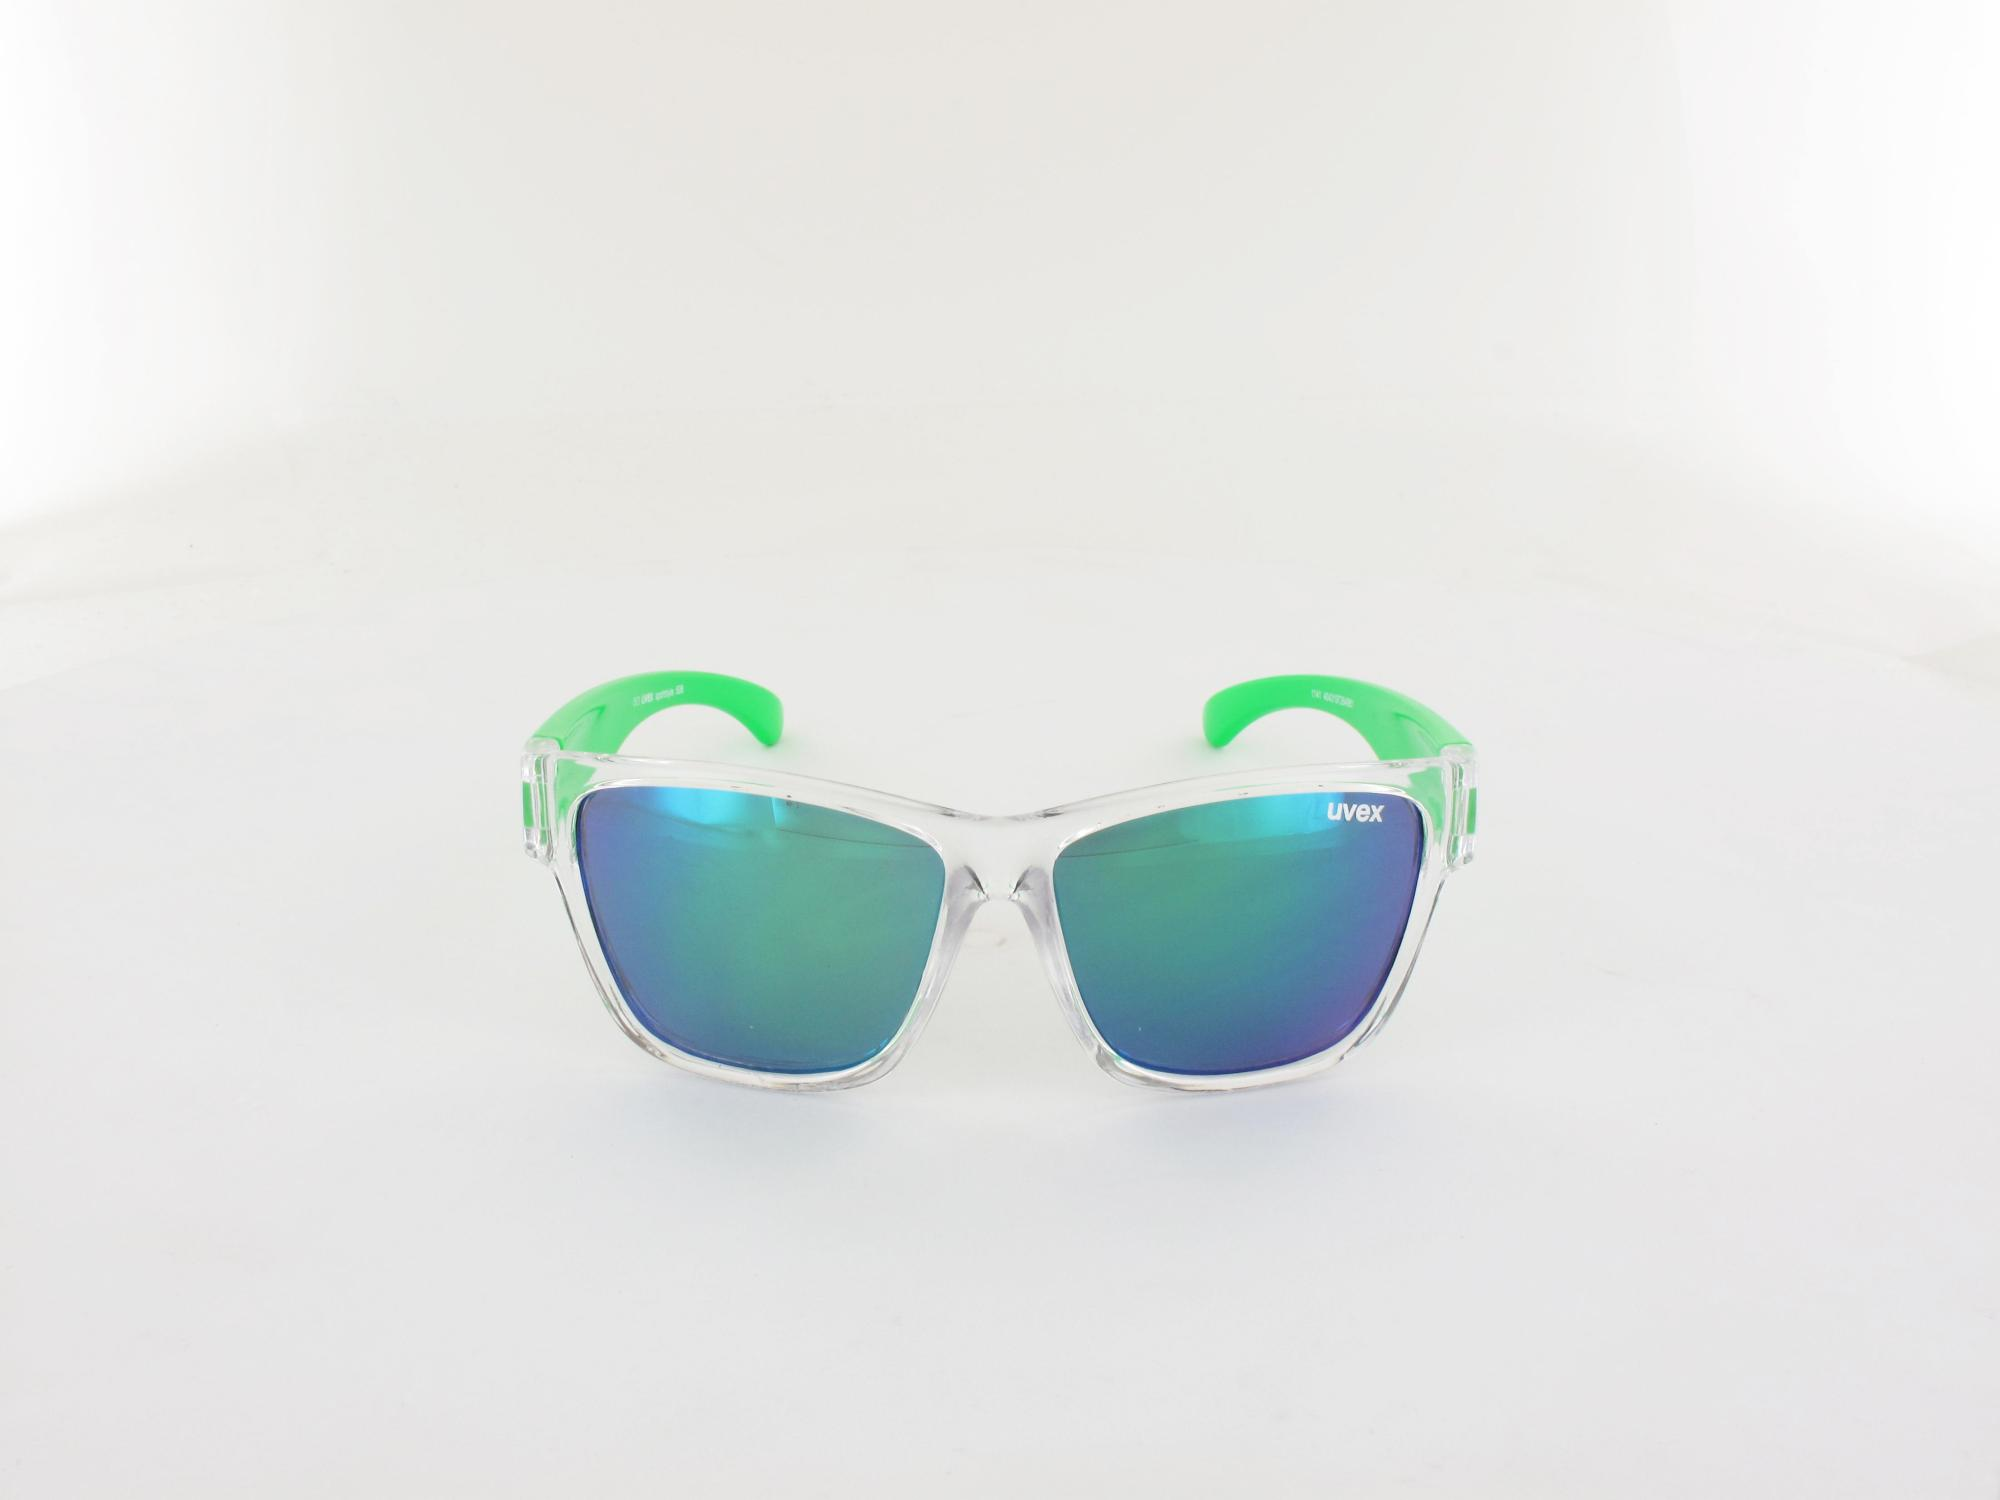 UVEX | Sportstyle KIDS 508 S533895 9716 47 | clear green / mirror green